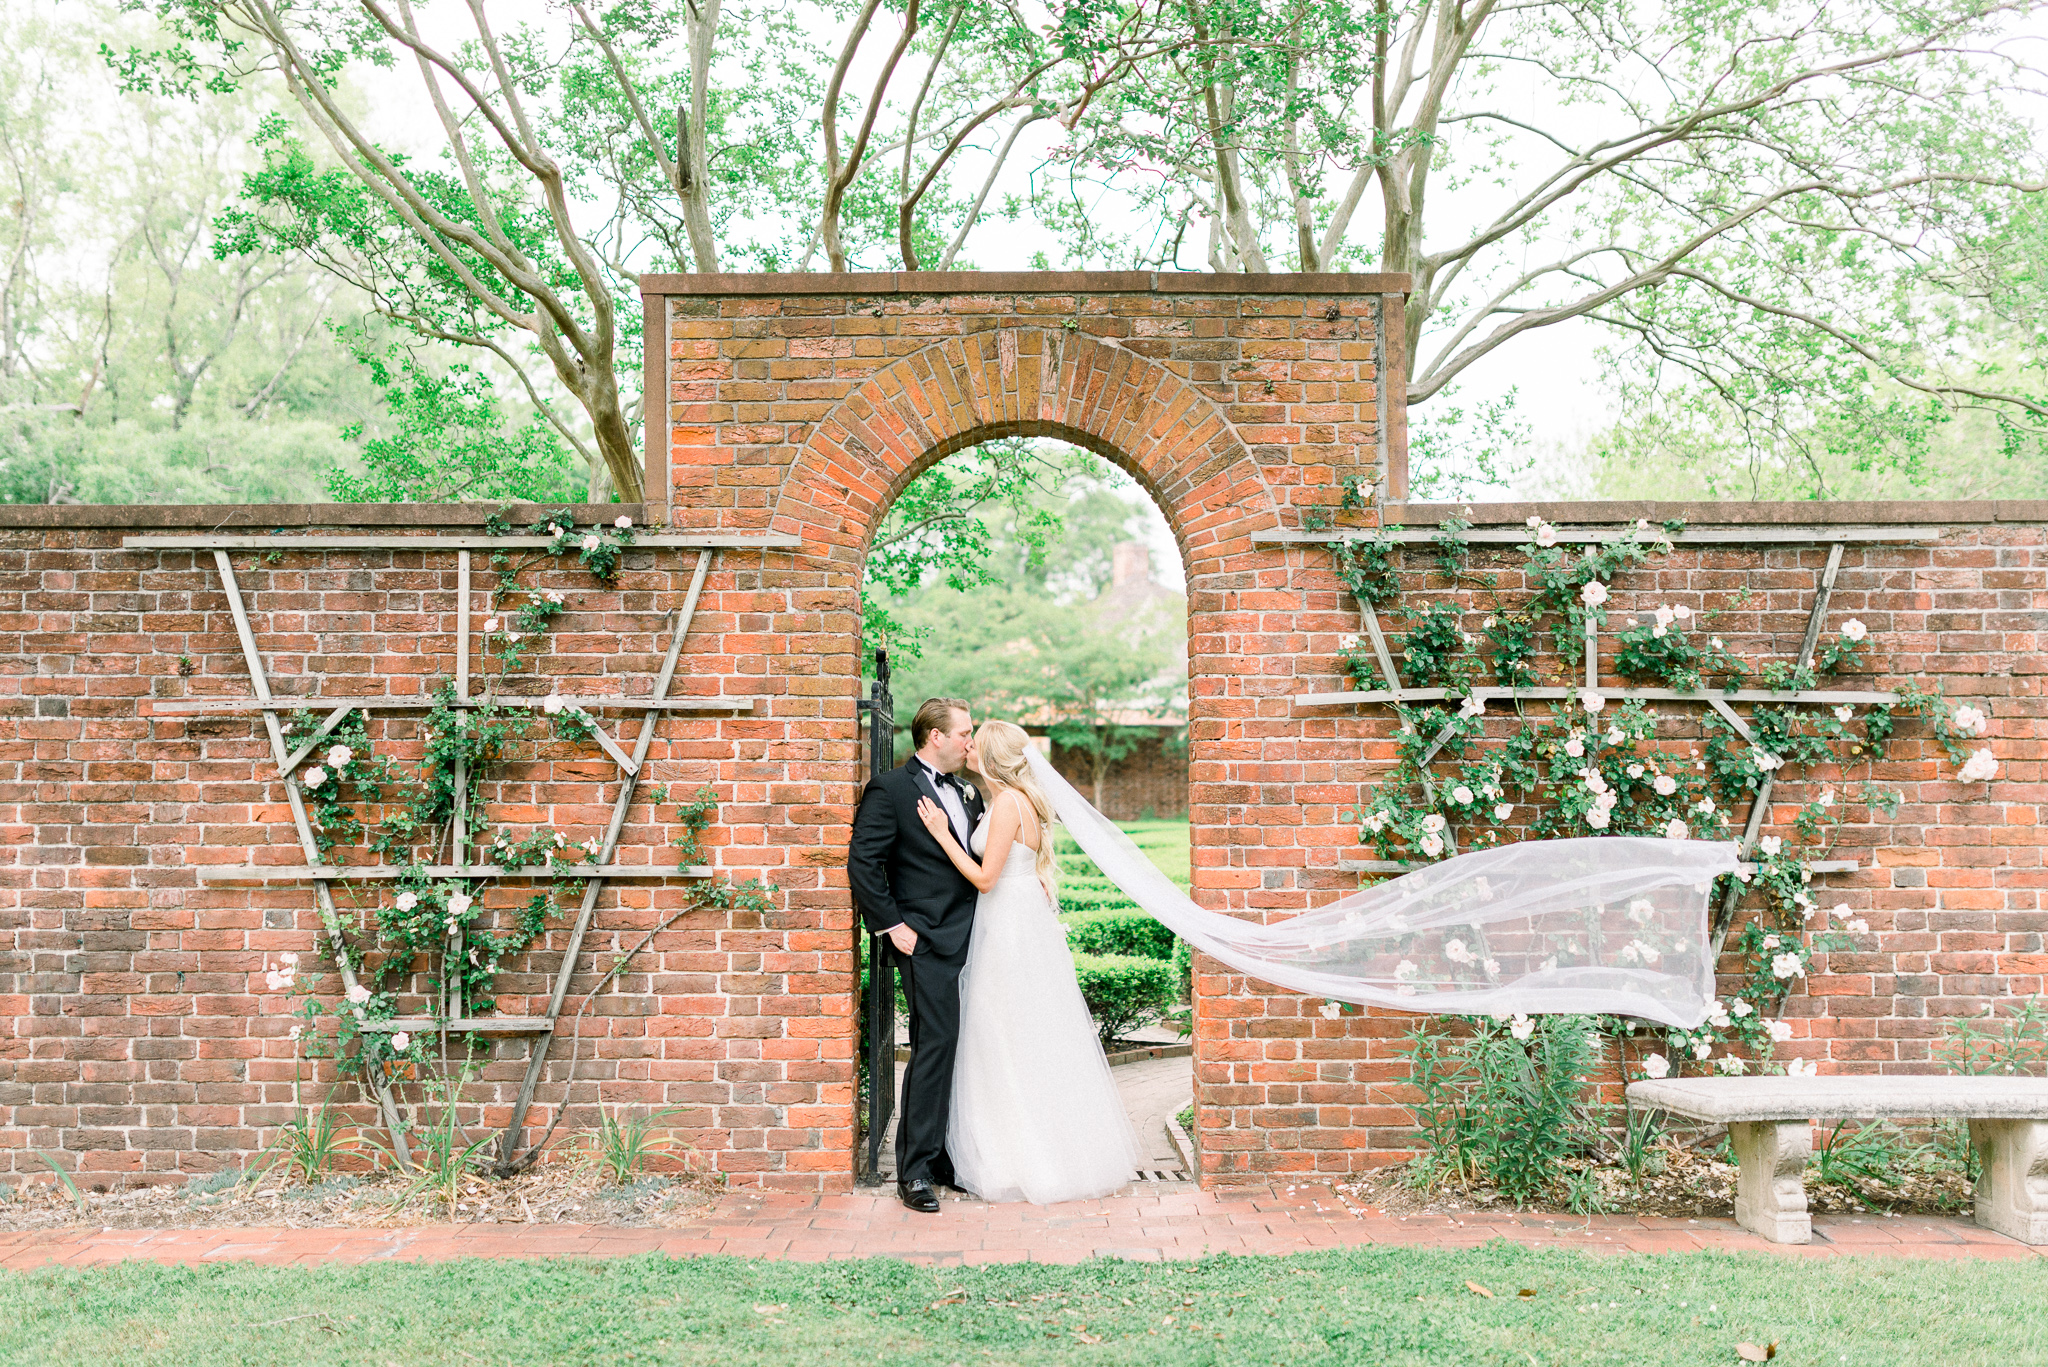 Megan + Kris | Elegant and Romantic Garden Soiree at Historic Tryon Palace in New Bern, North Carolina | Indianapolis Destination Wedding Photographers